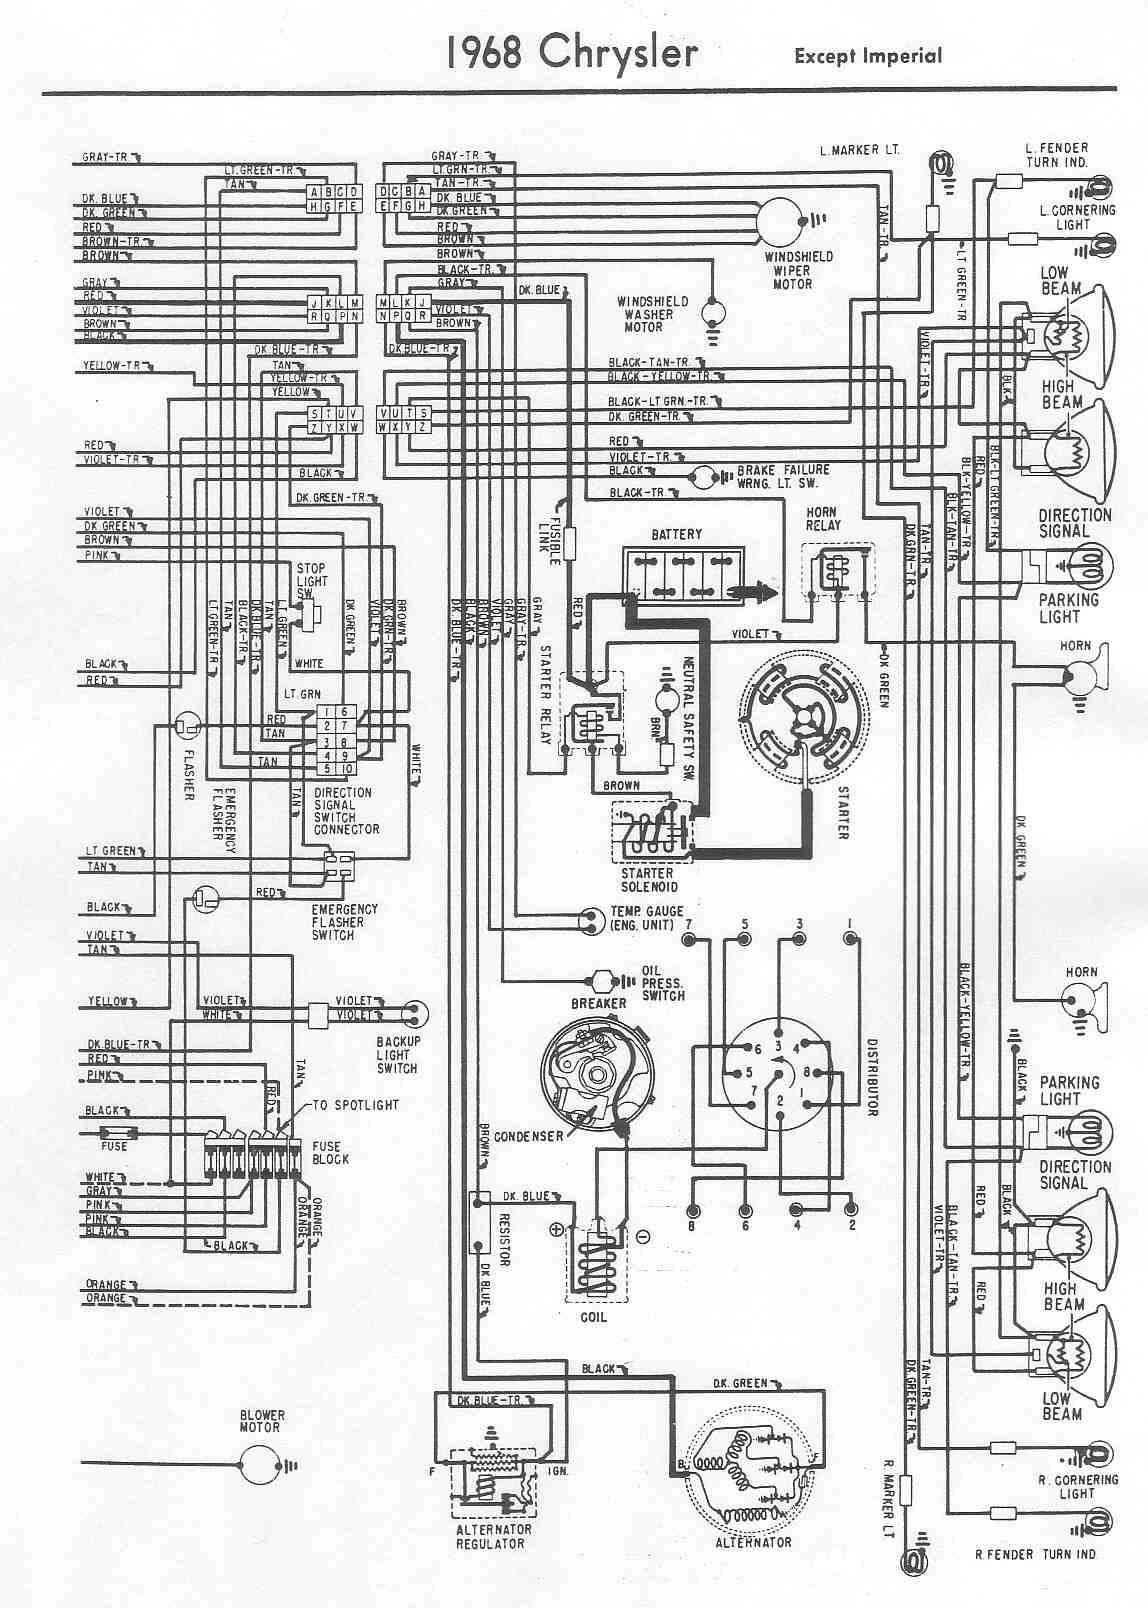 electrical wiring diagram of 1968 chrysler all model?t\\\\\\\\\\\\\=1505656201 free wiring diagrams weebly 2002 cadilac escalade gandul 45 77  at panicattacktreatment.co